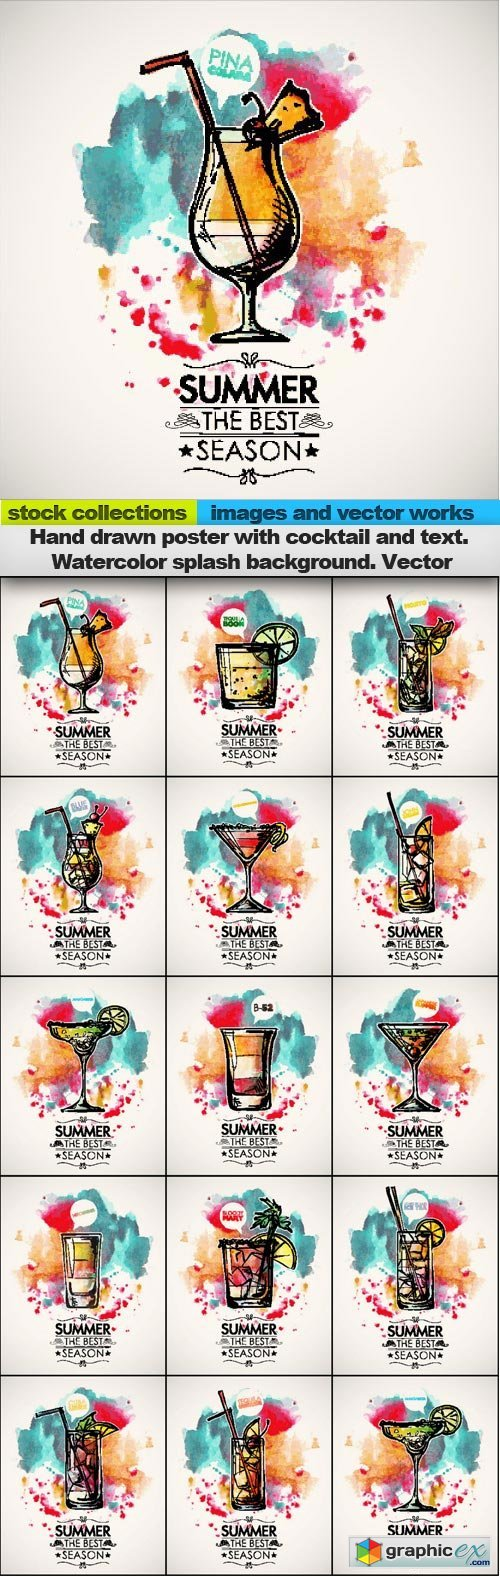 Hand drawn poster with cocktail and text. Watercolor splash background. Vector, 15 x EPS